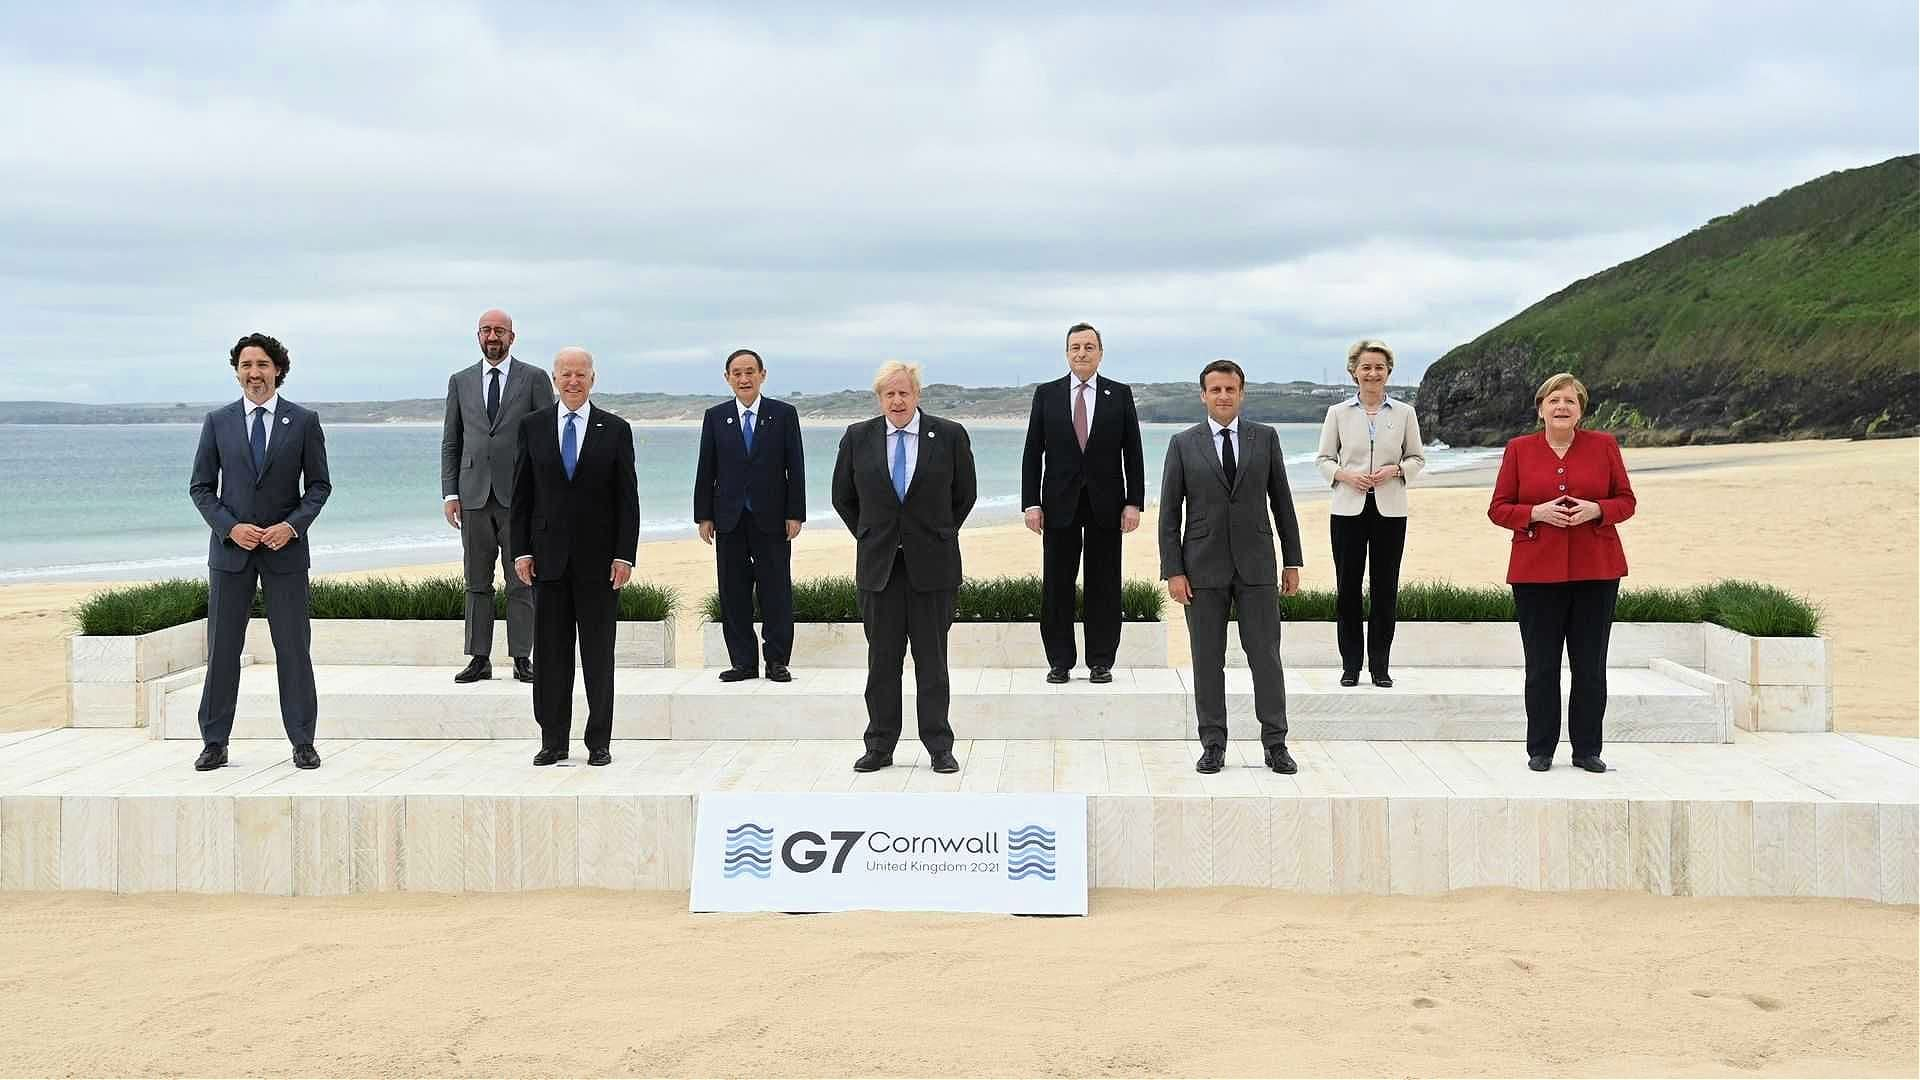 world-climate-change-topped-agenda-as-world-leaders-met-in-cornwall-for-g7-olive-oil-times